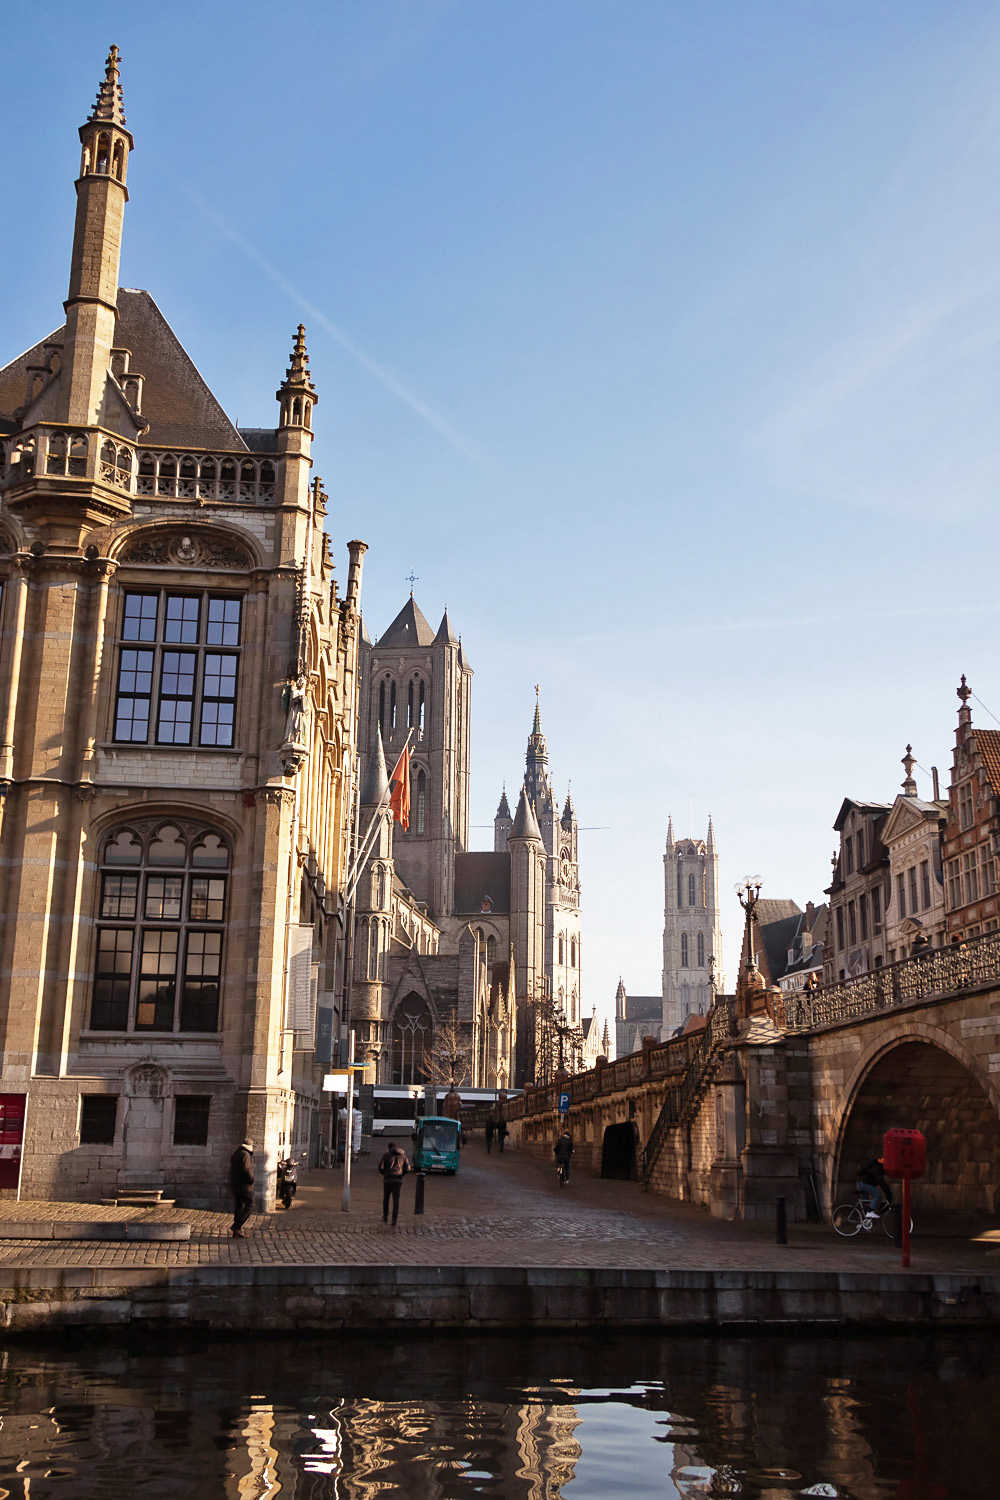 A view of Ghent's three famous towers: St Bavo's Cathedral, the Belfry, St Nicholas' Church | How To Spend a Long Weekend in Ghent, Belgium | Mondomulia